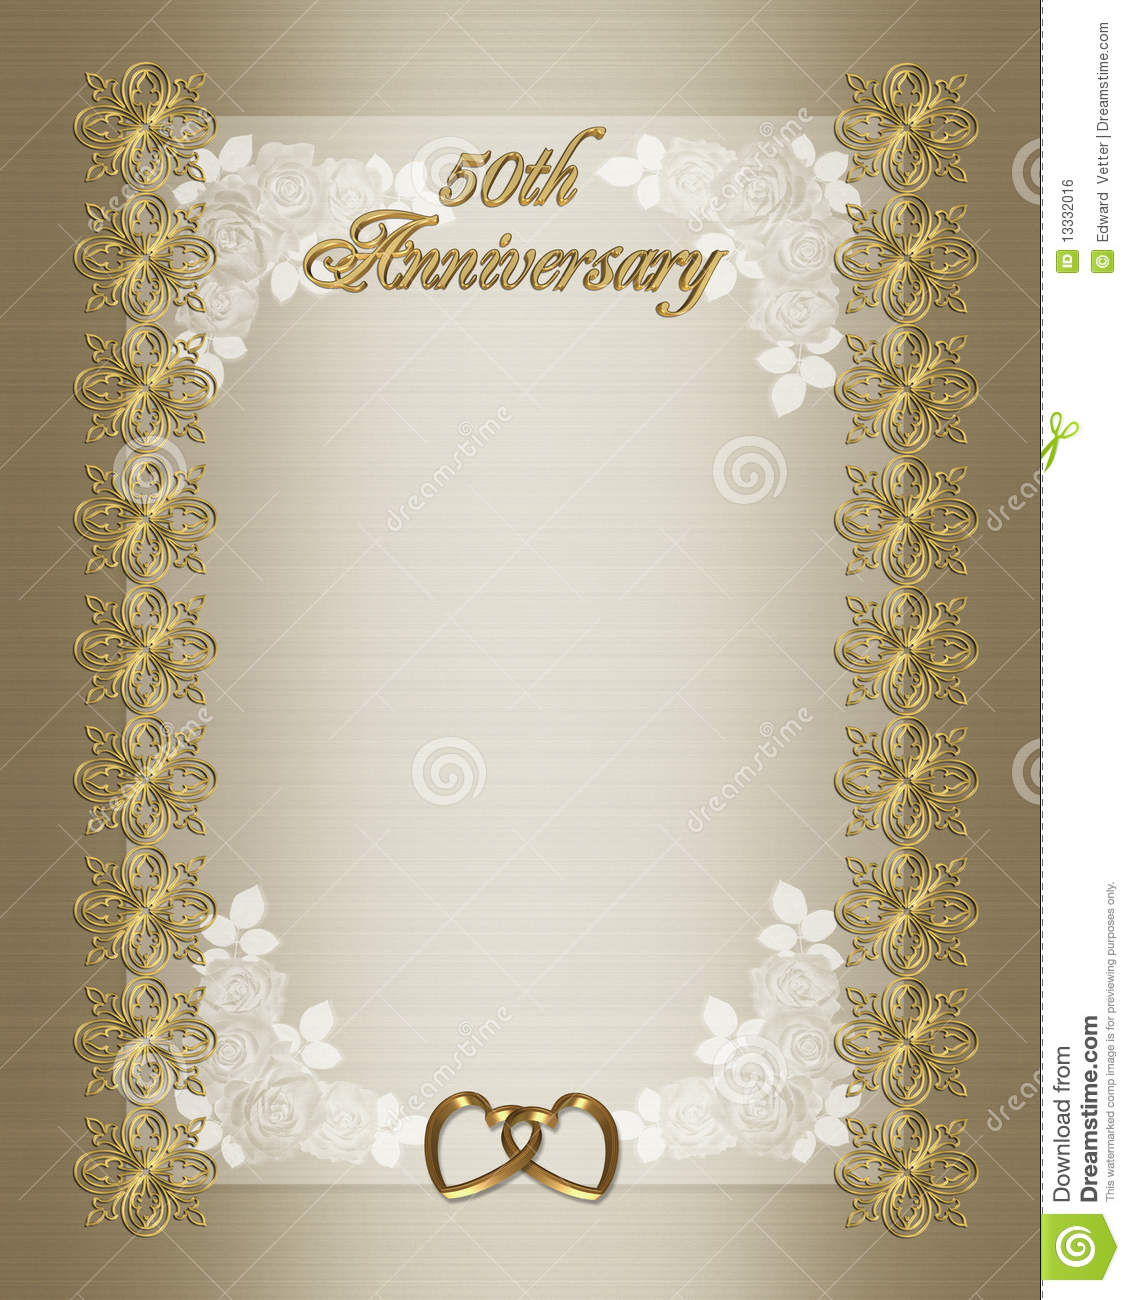 50th Wedding Anniversary Invitation Template Stock Illustration    Illustration Of Decoration, Background: 13332016